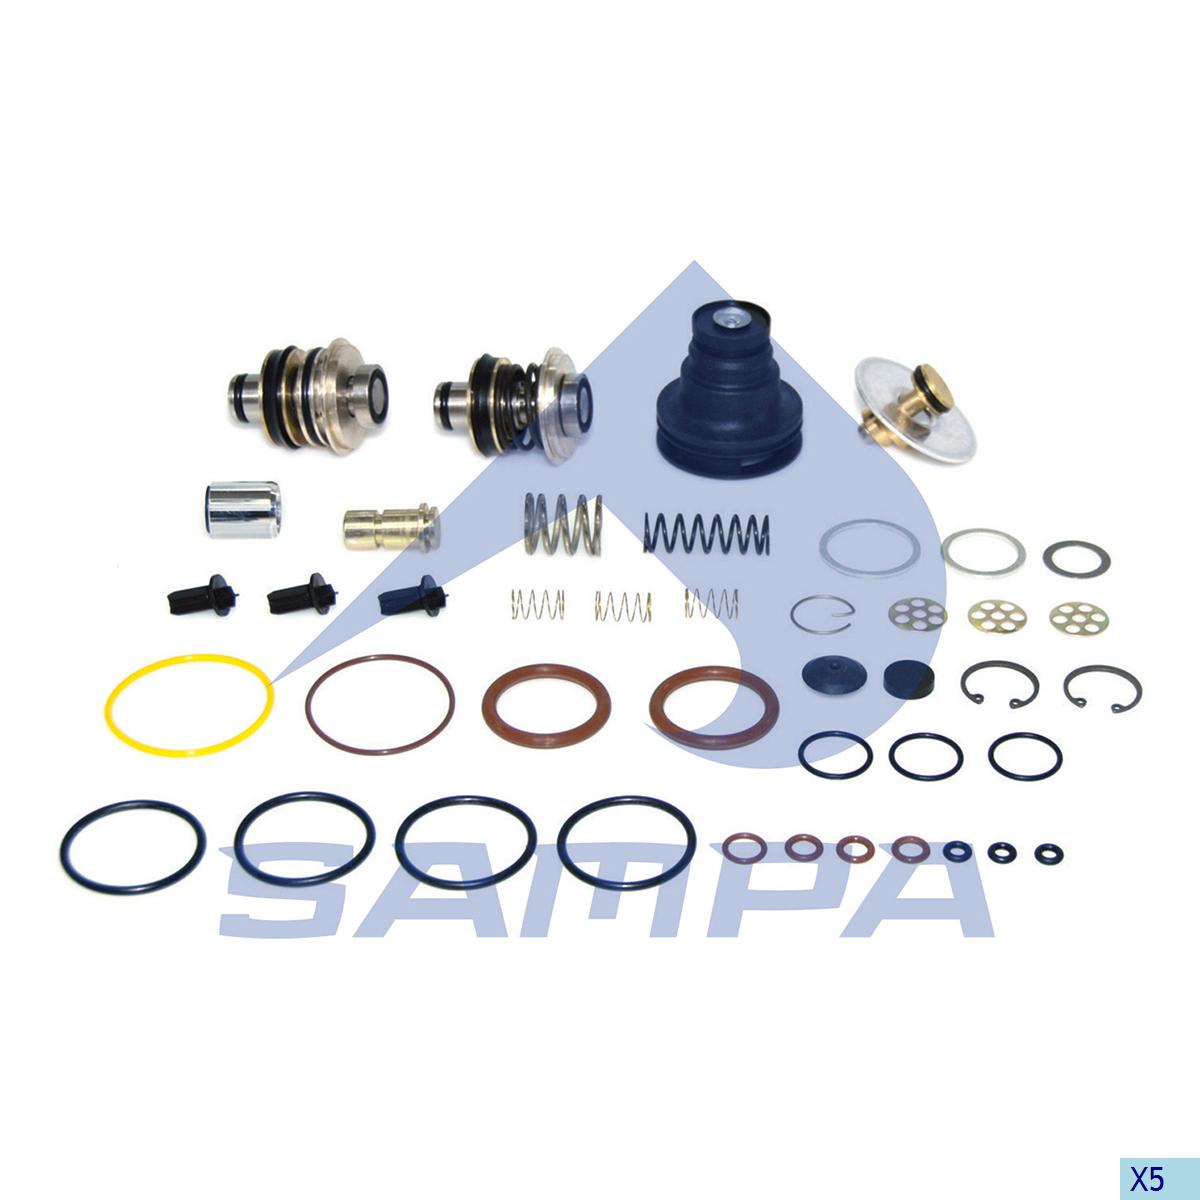 Repair Kit, Valve, Daf, Compressed Air System